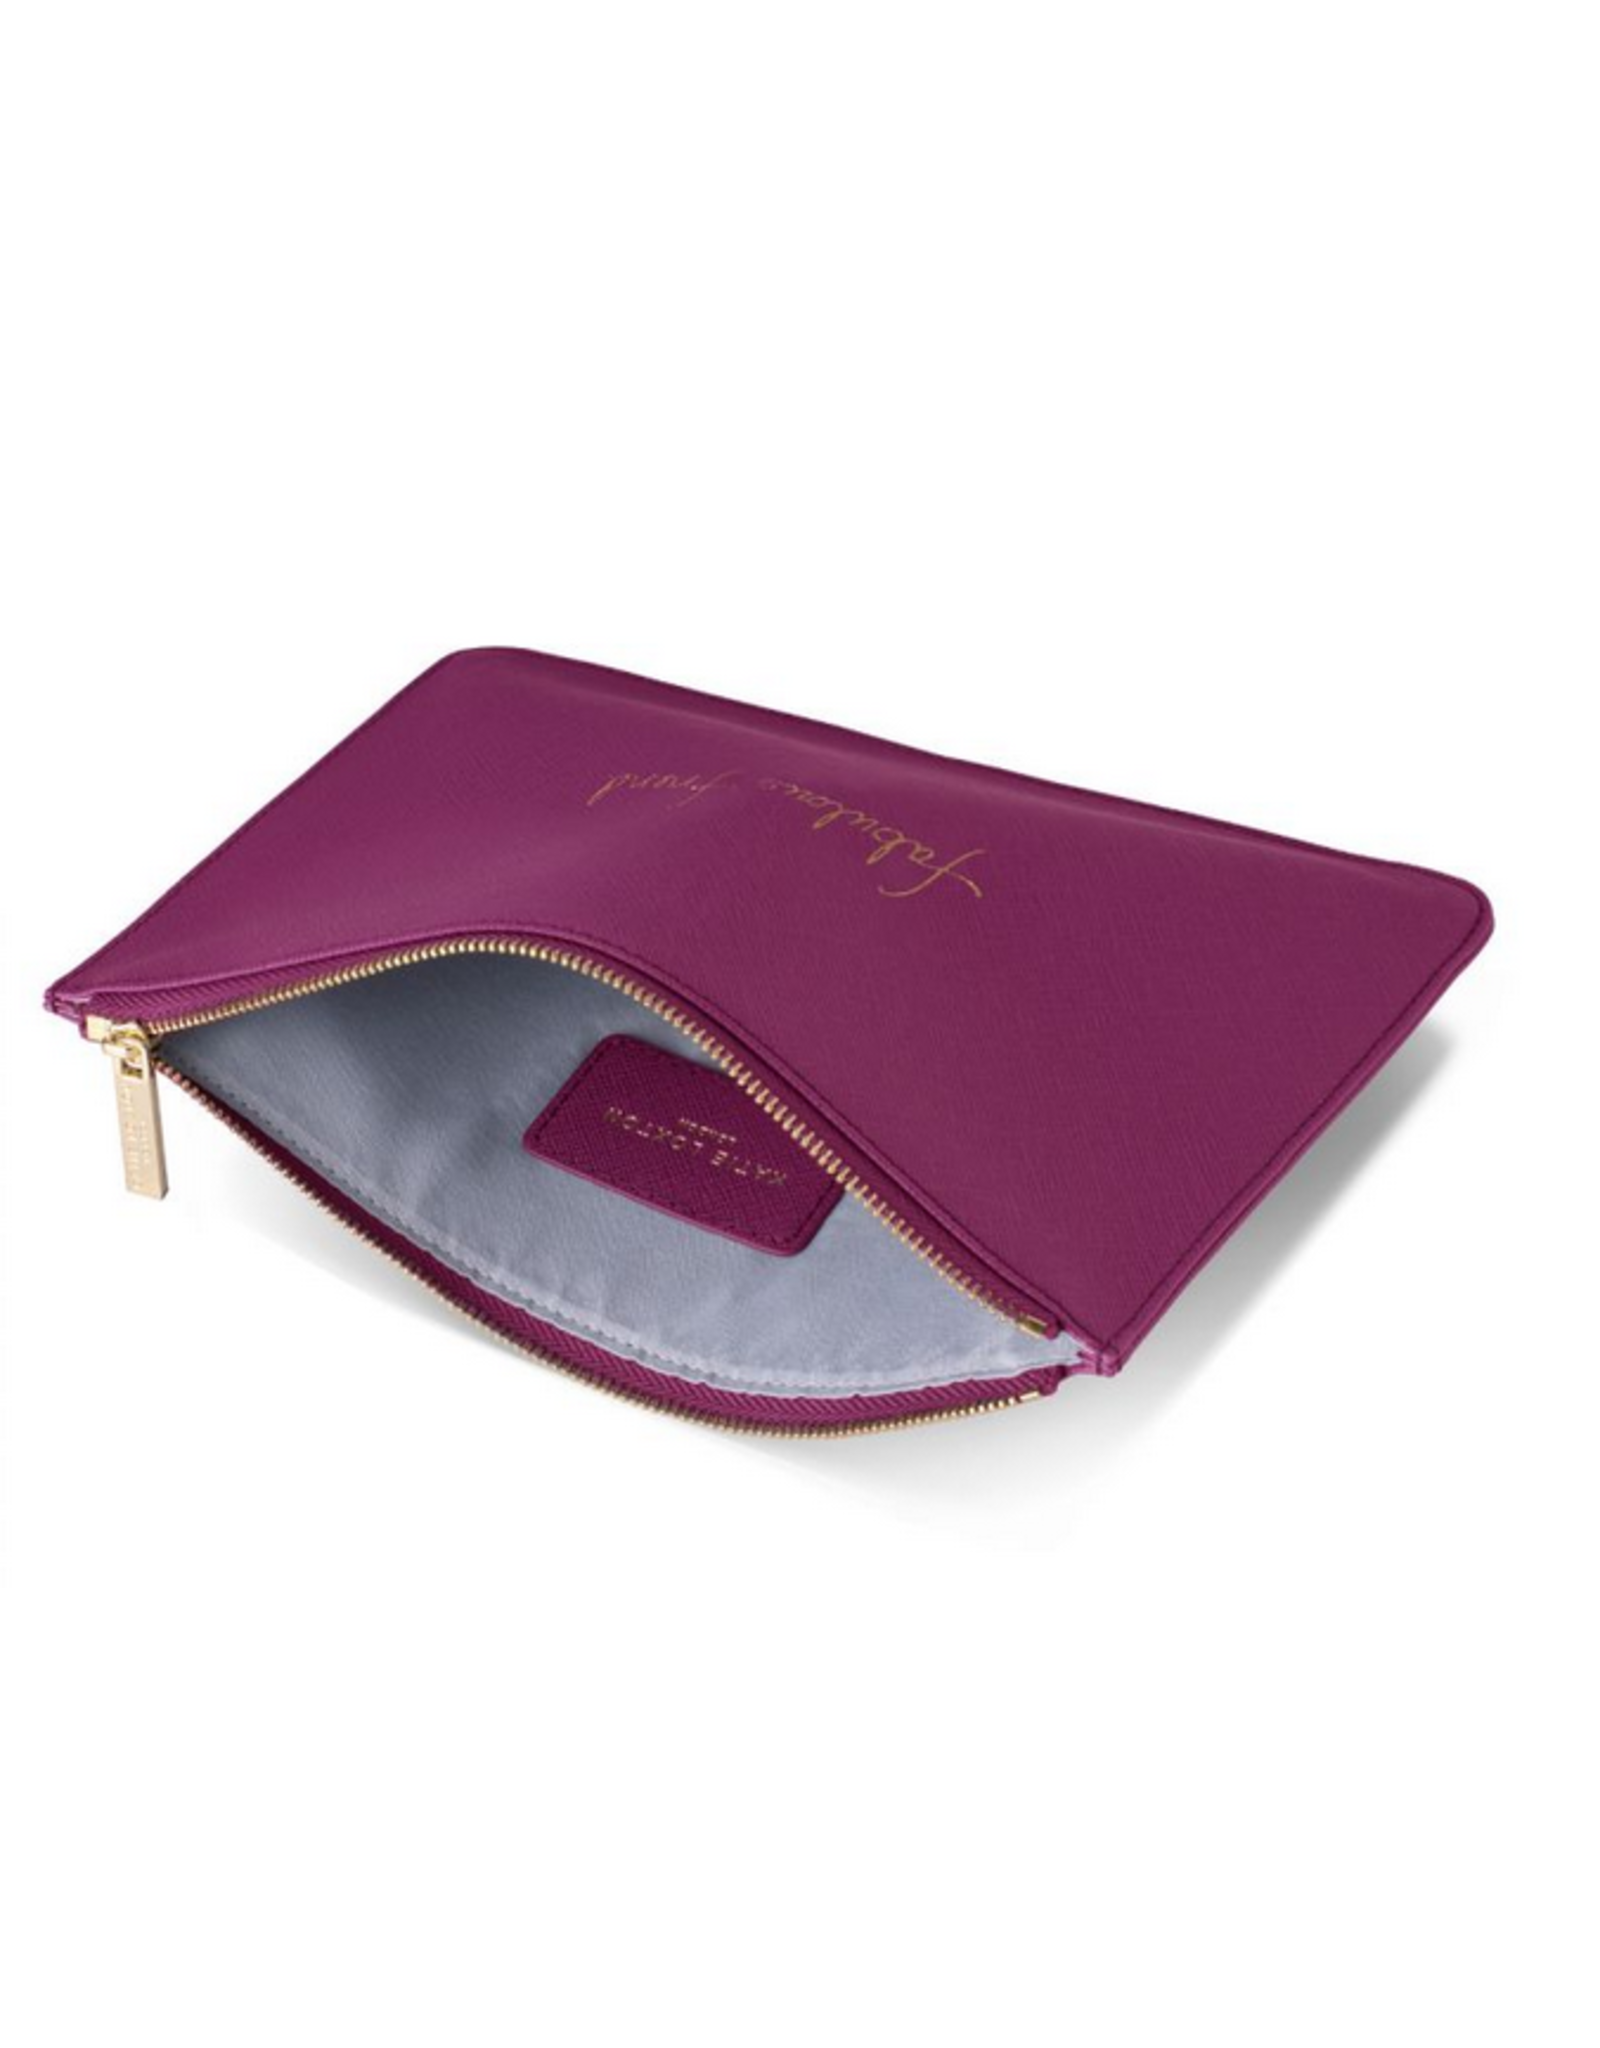 Katie Loxton Fabulous Friend Perfect Pouch in Cerise Pink